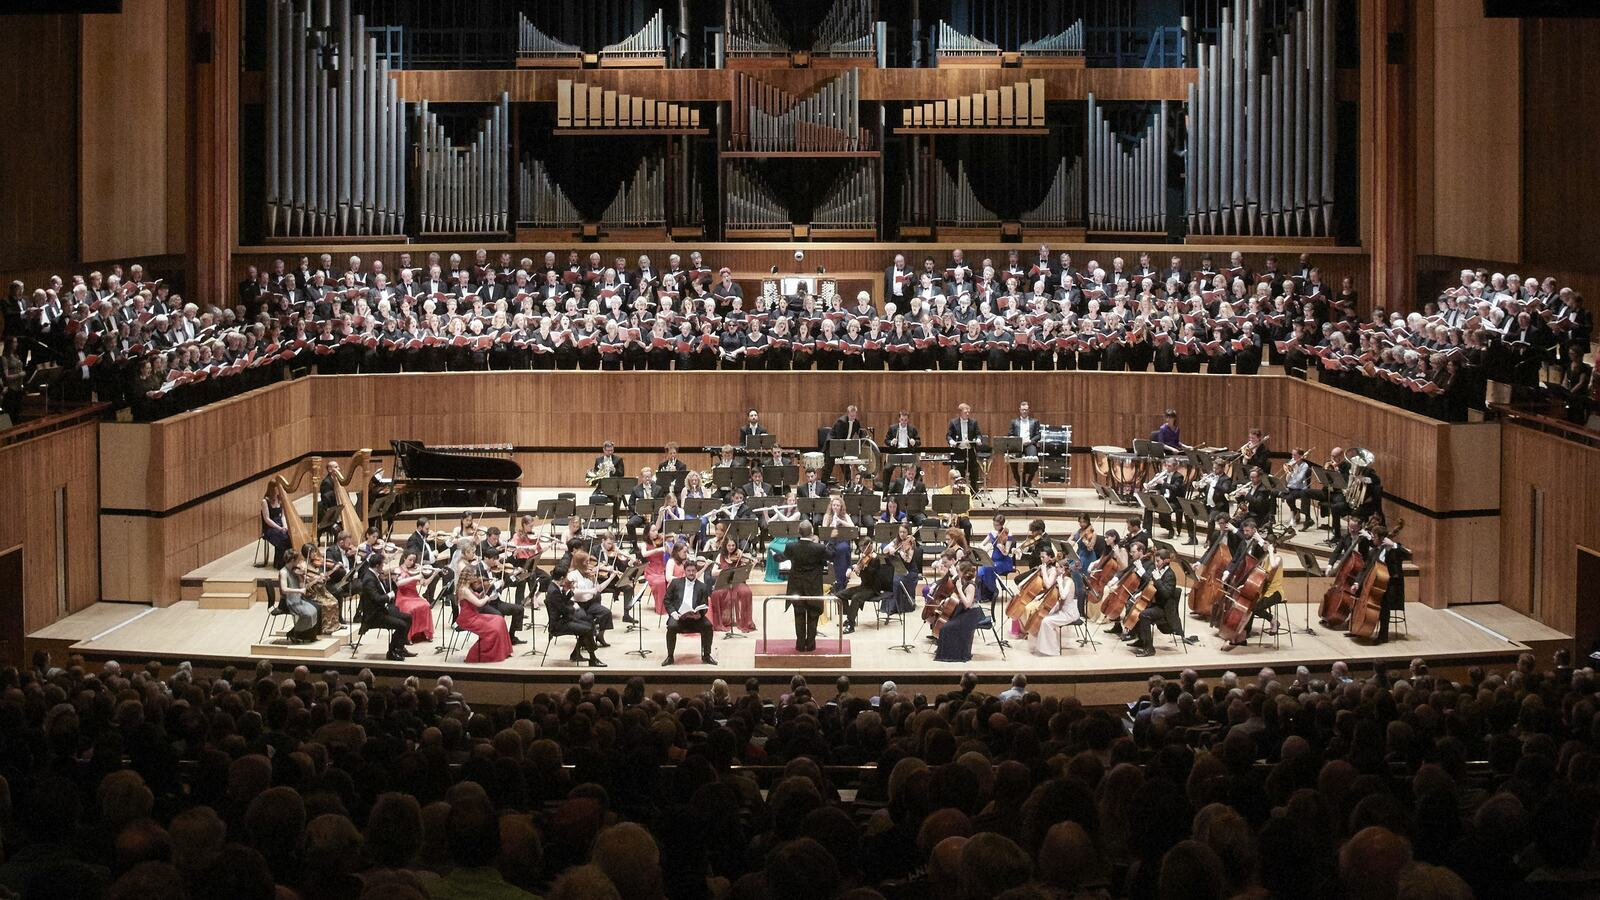 Parliament Choir on stage at Royal Festival Hall